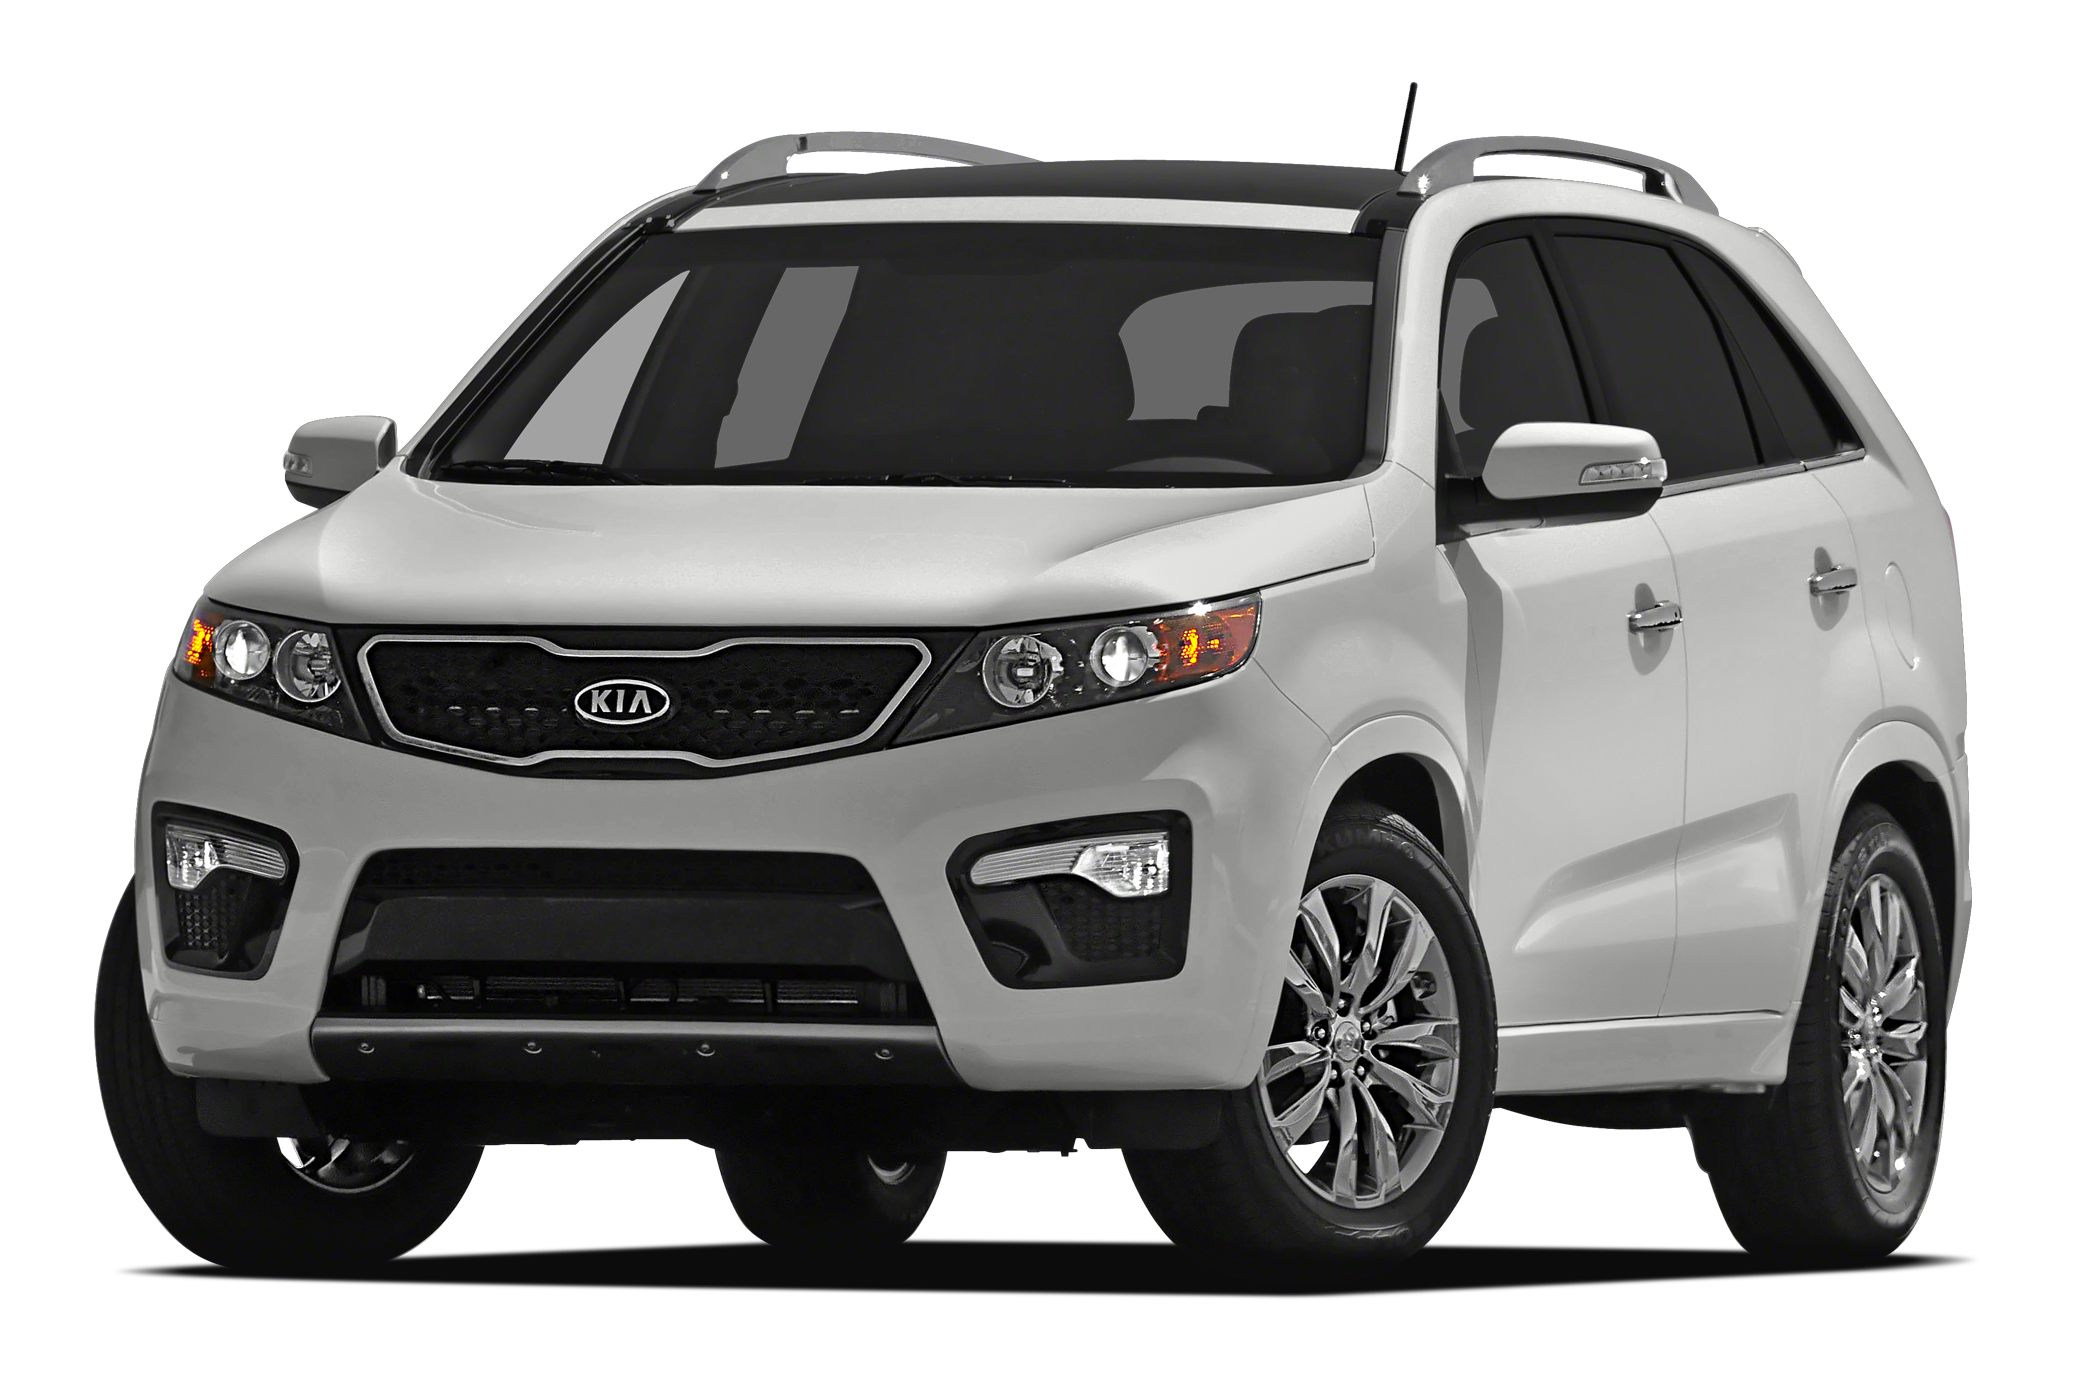 2013 Kia Sorento SX DISCLAIMER We are excited to offer this vehicle to you but it is currently in